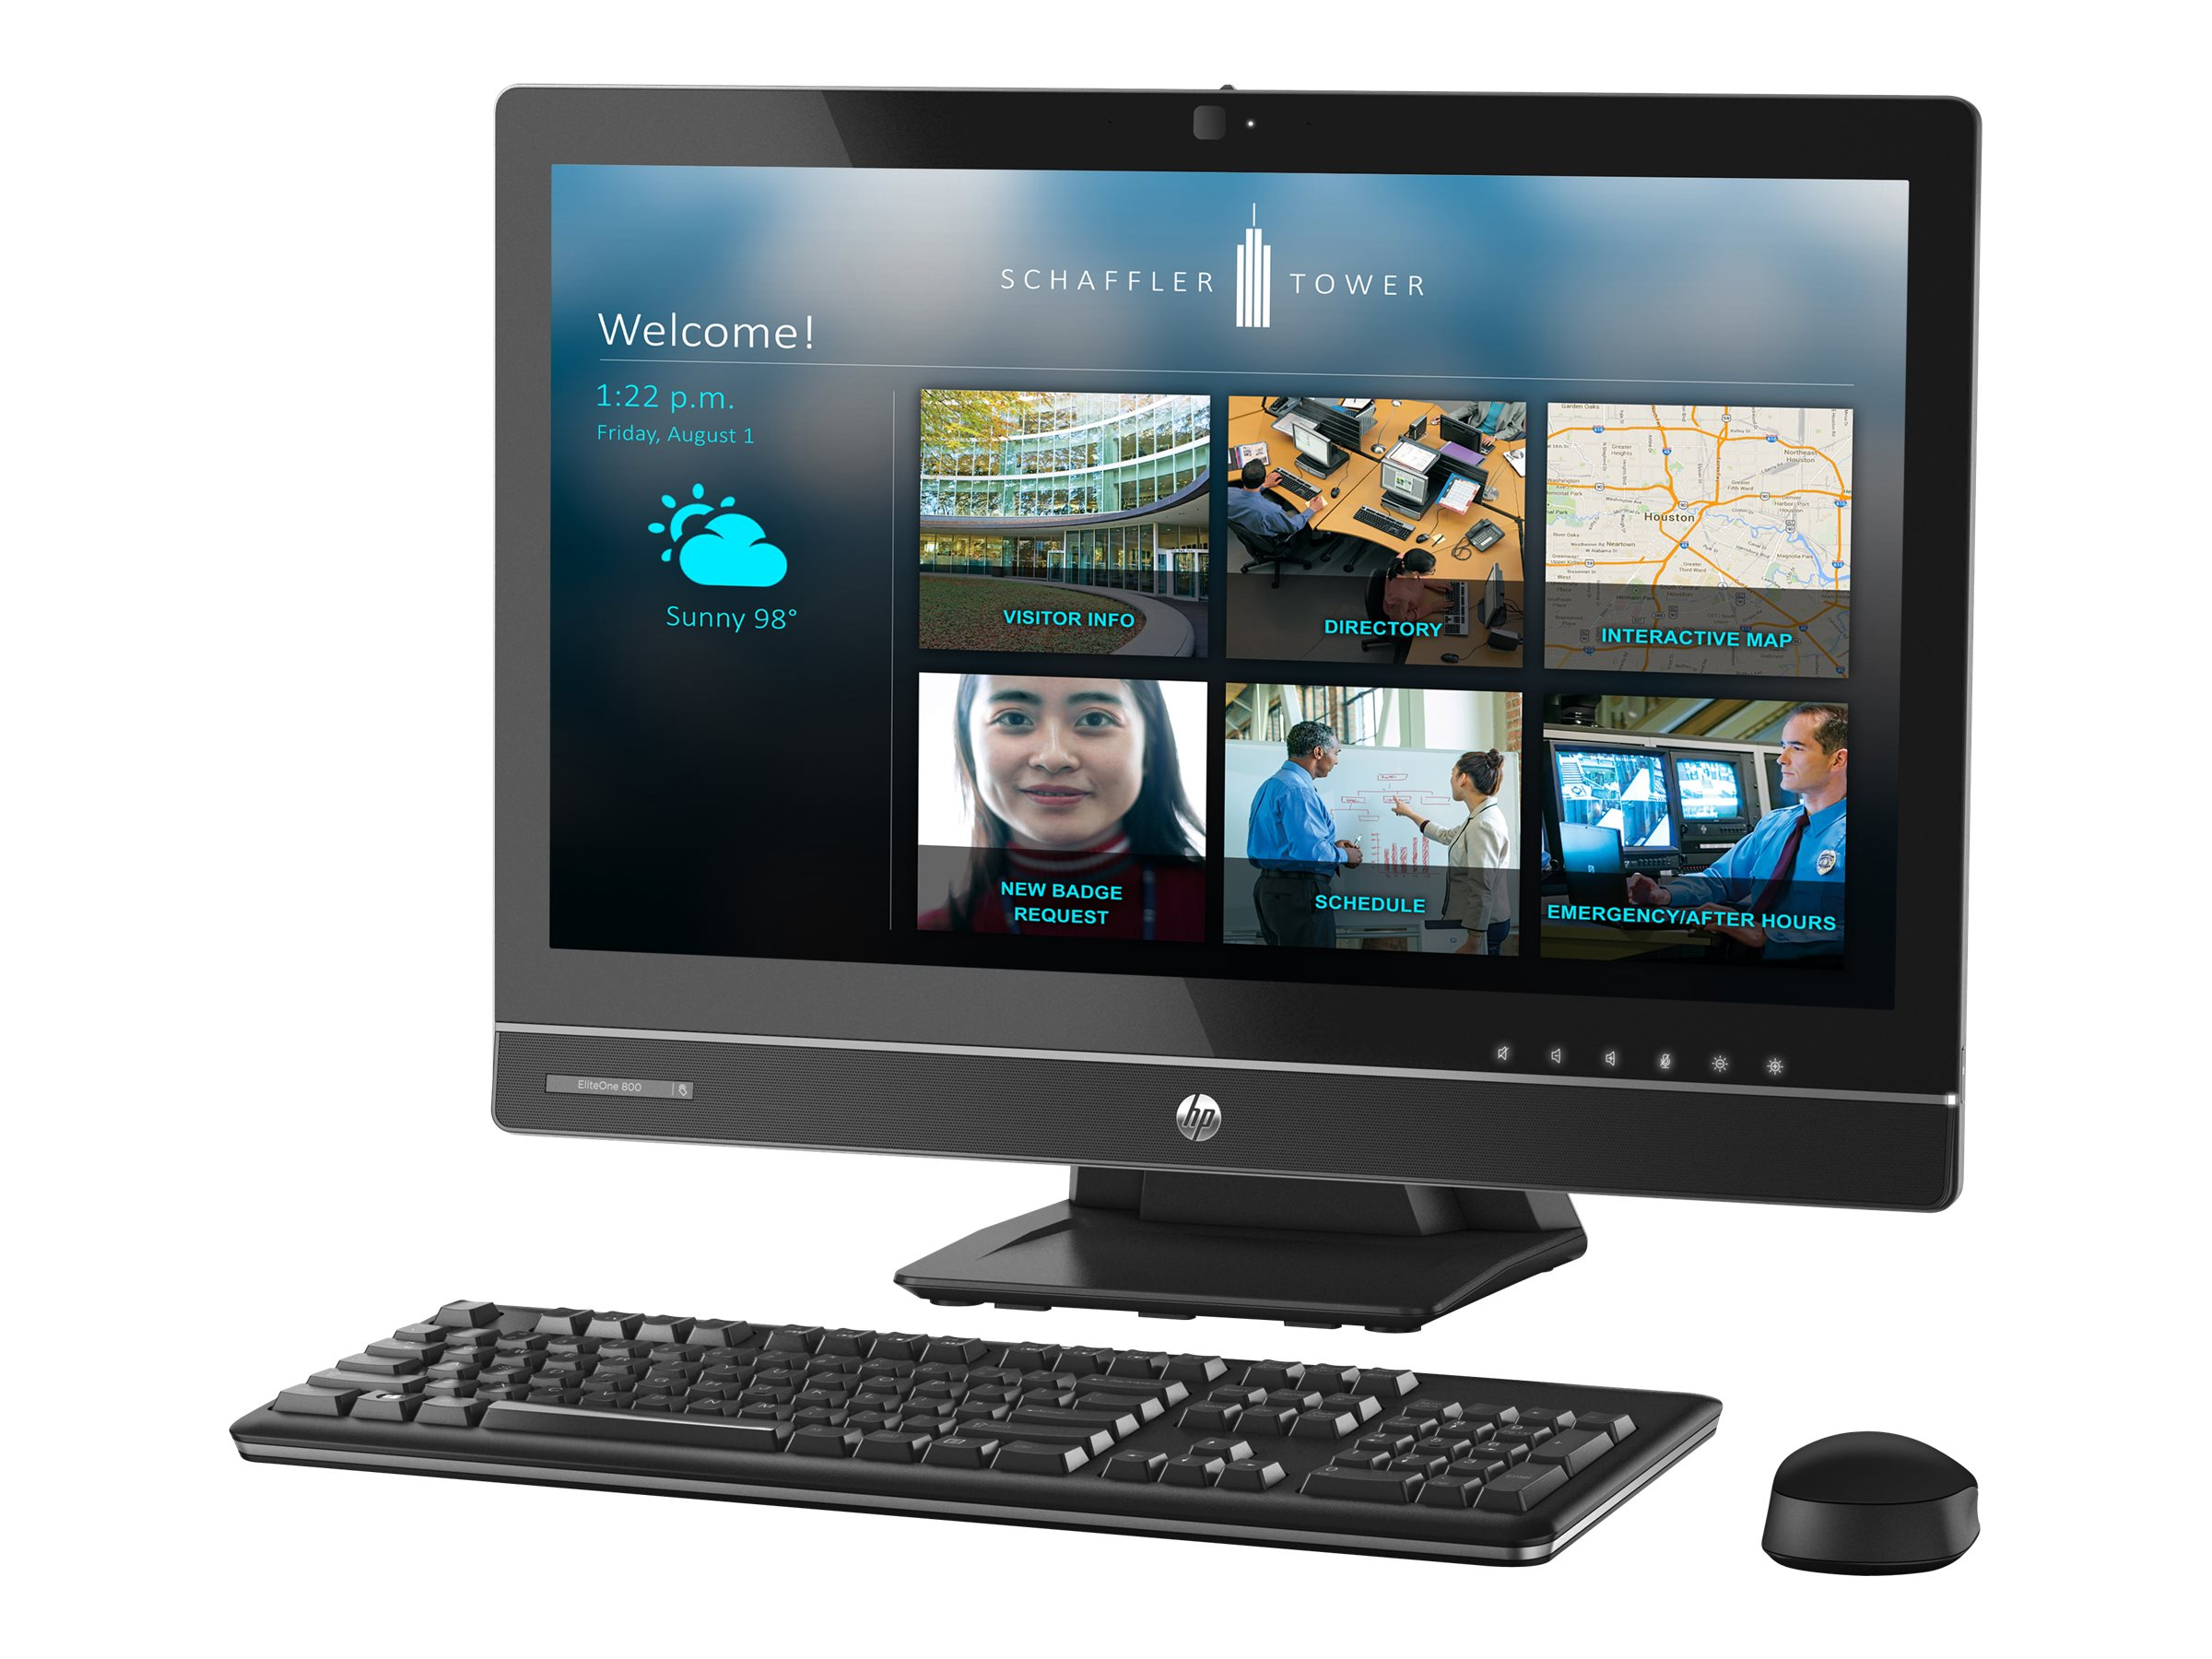 HP EliteOne 800 G1 AIO Core i7-4790S 3.2GHz 8GB 1TB SSHD DVD-RW GbE abgn WC W7P64-W8.1P, K1K41UT#ABA, 17693181, Desktops - All-in-One